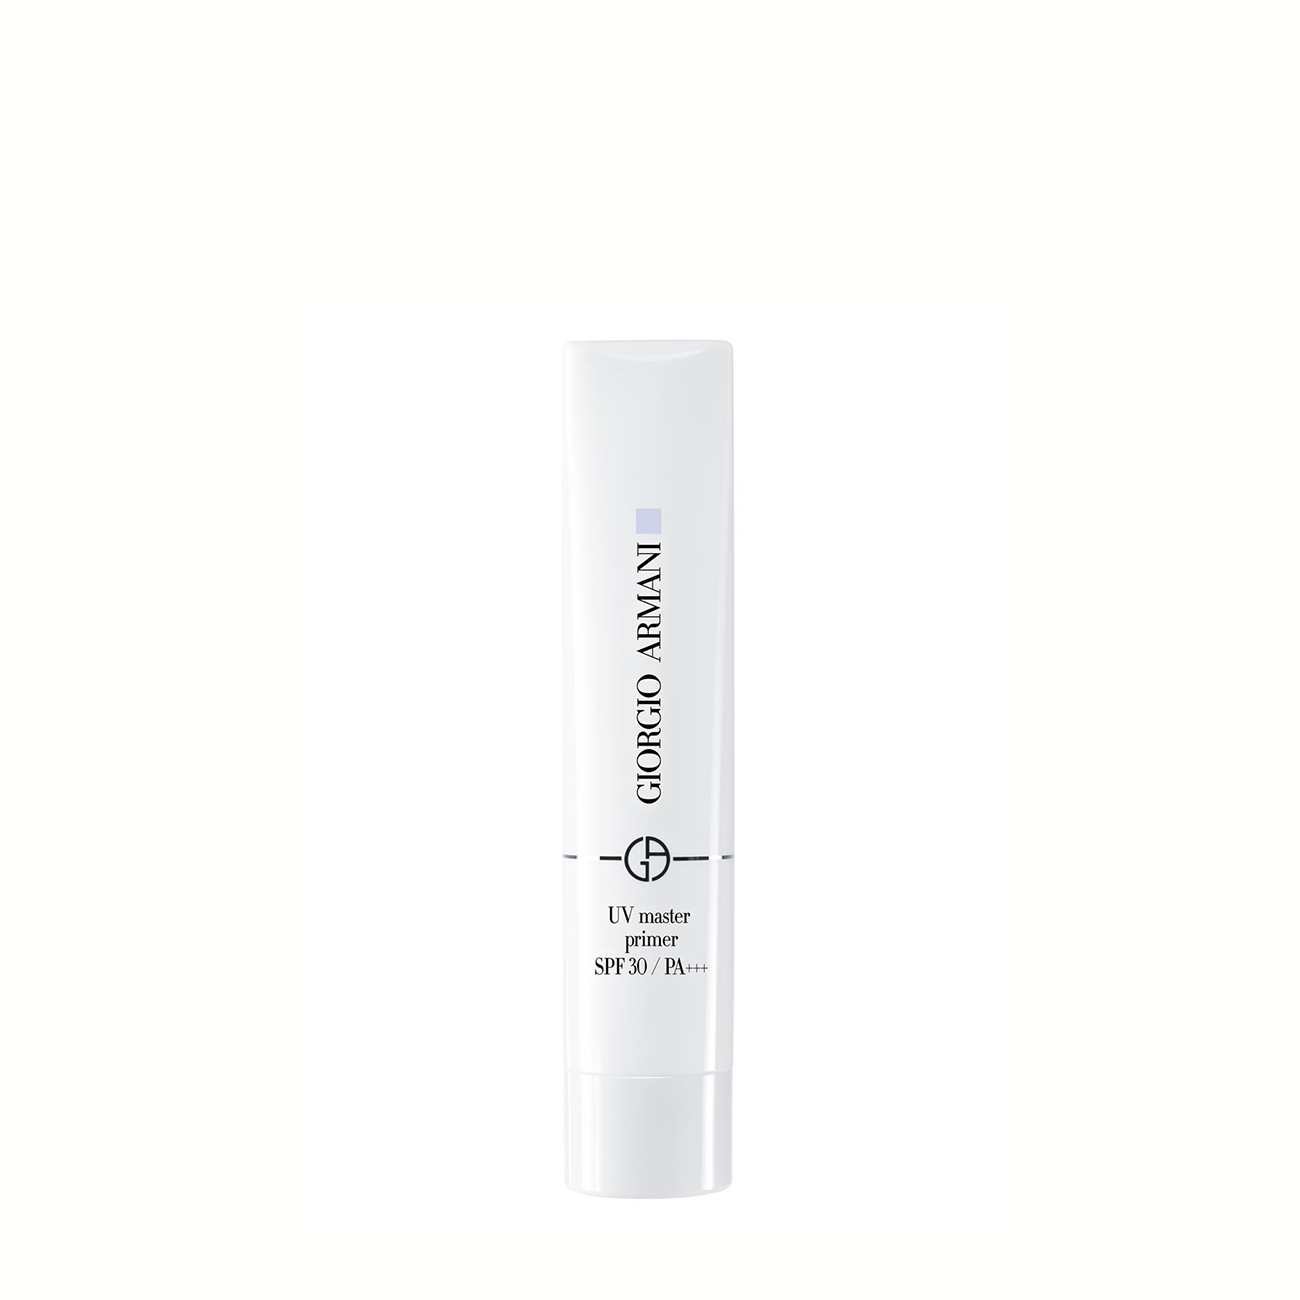 Uv Master Primer 1 30ml Giorgio Armani imagine 2021 bestvalue.eu